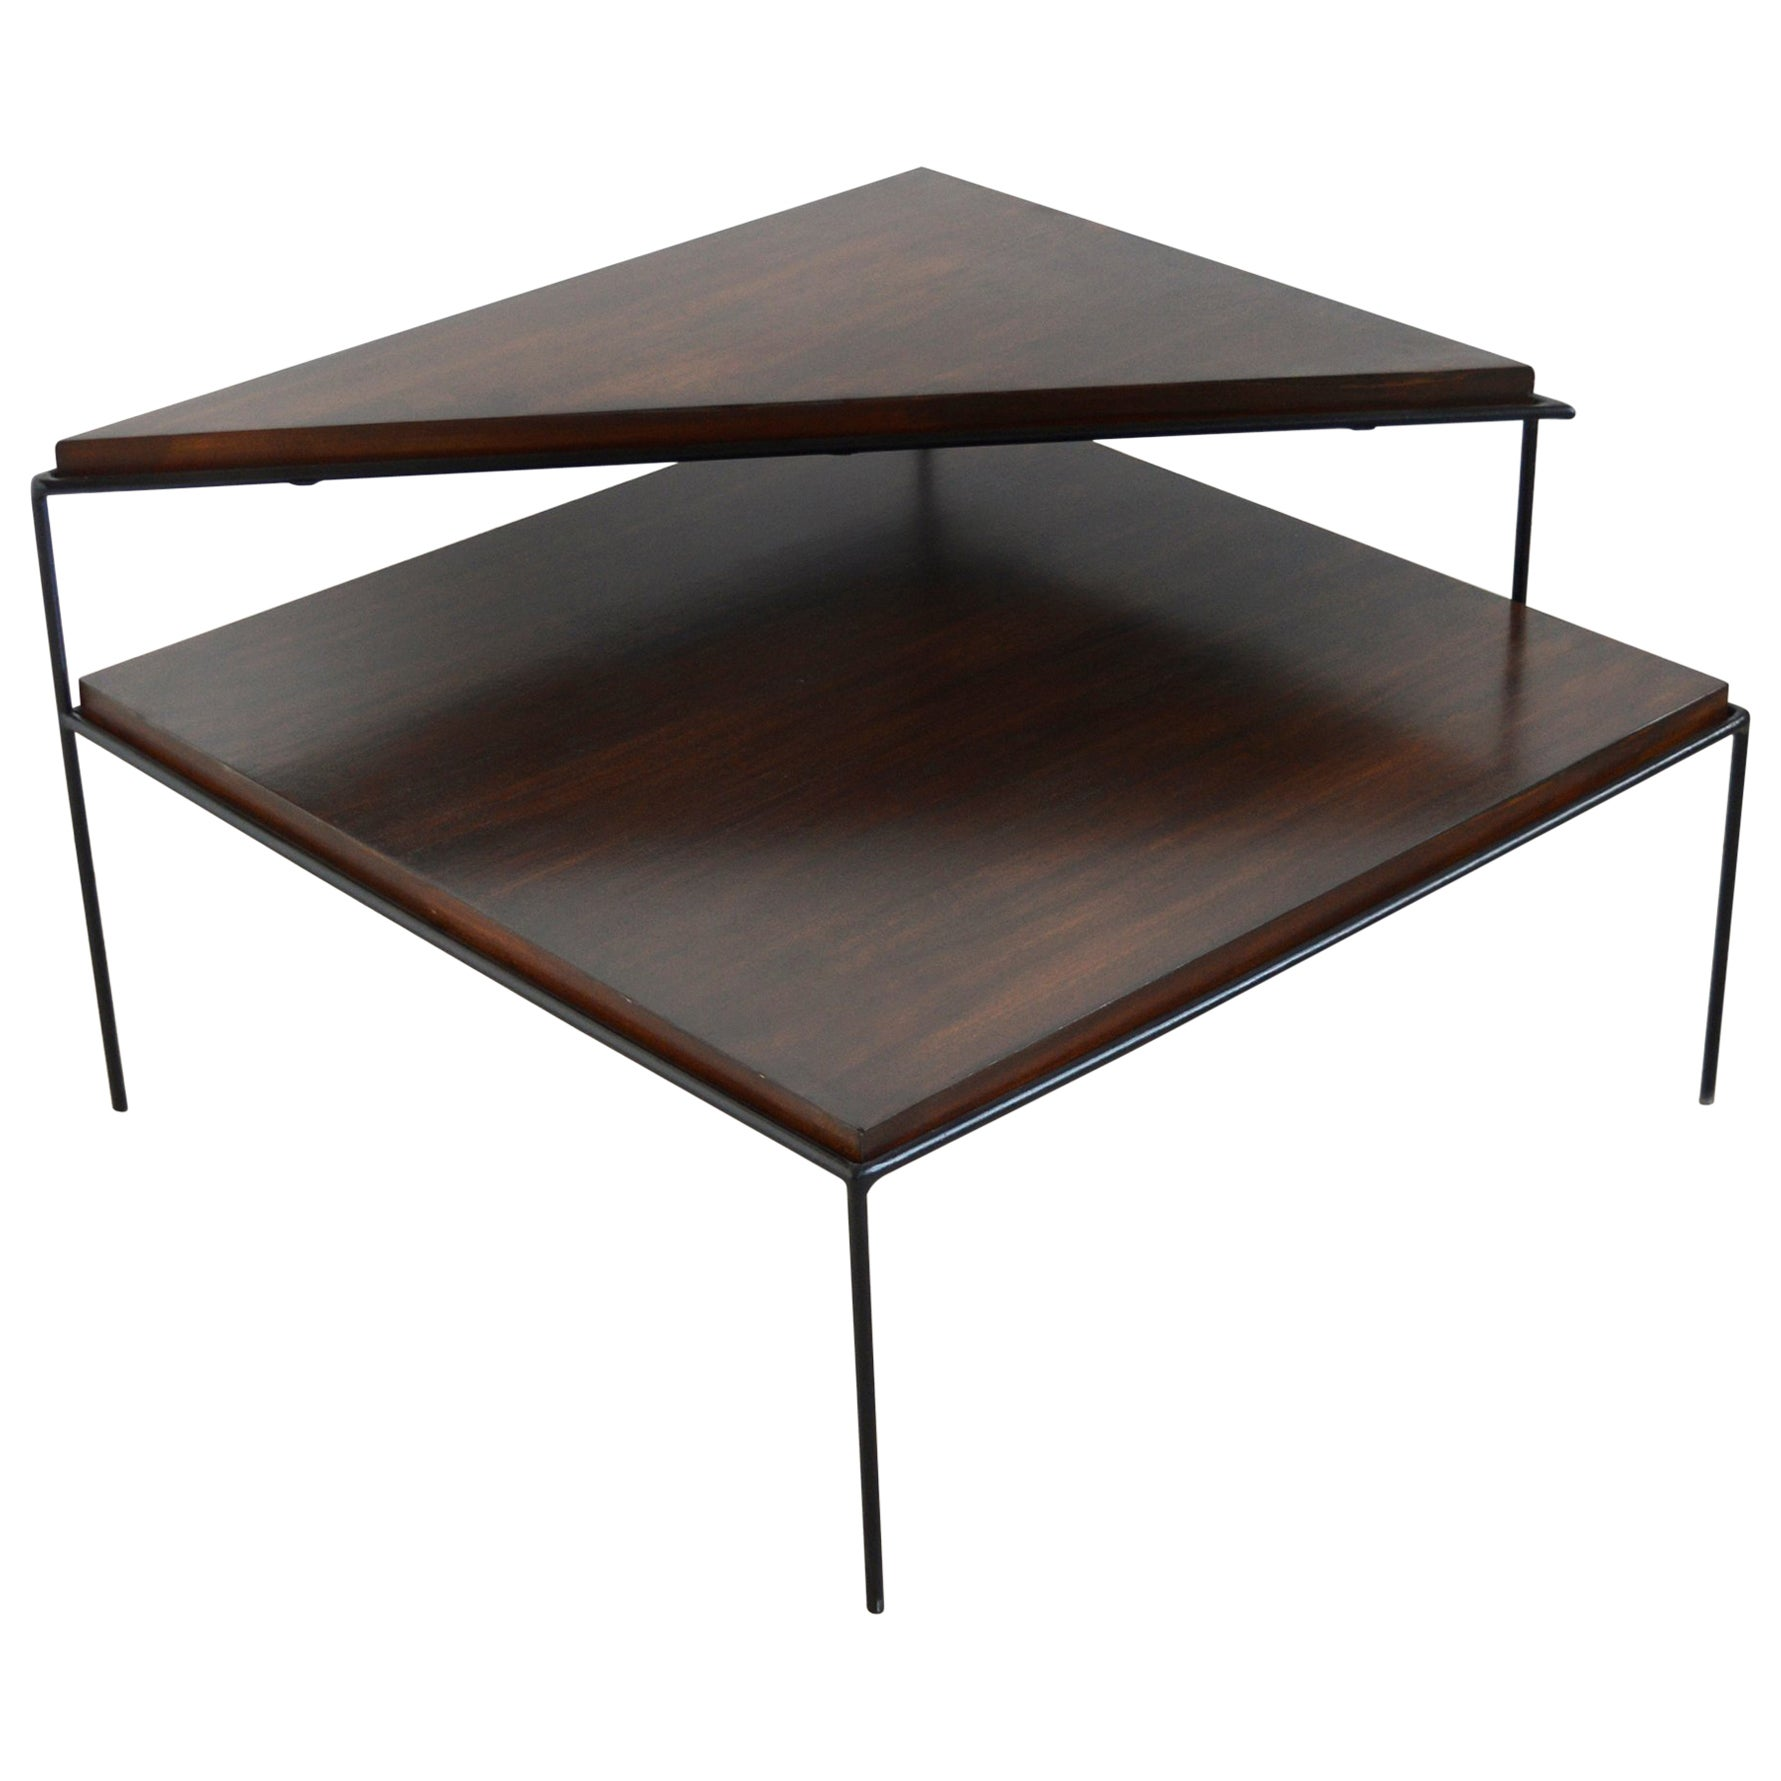 Paul McCobb Two-Tier Corner Table with Iron Frame